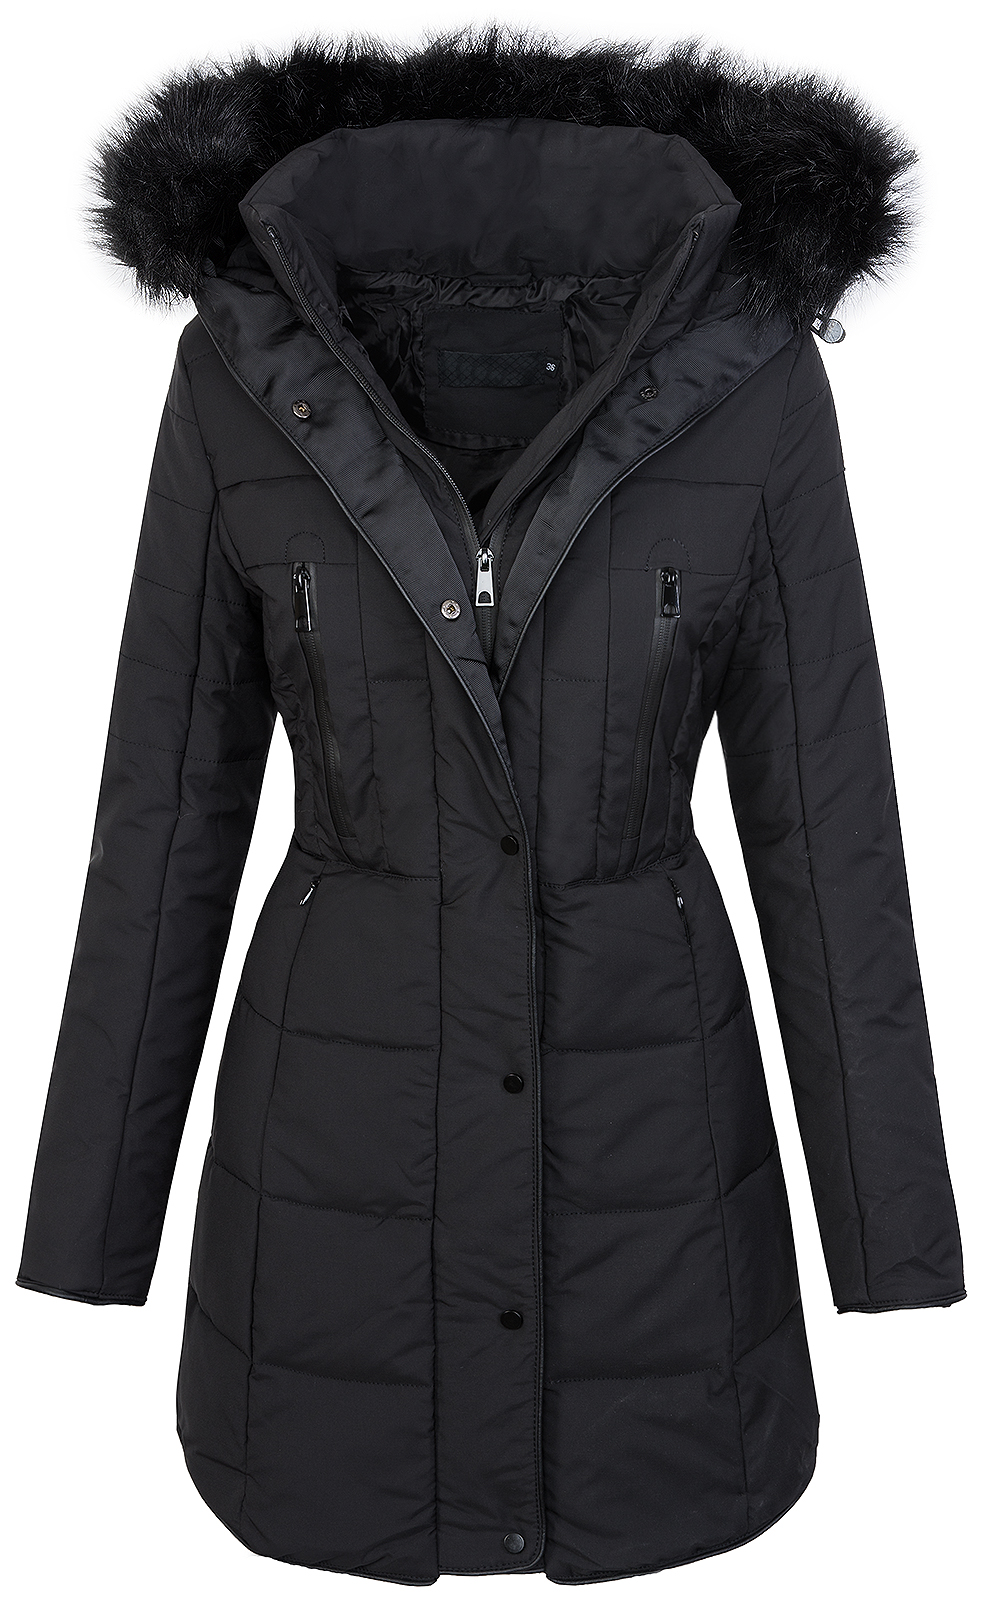 damen winter jacke steppmantel parka langer mantel fell kragen kapuze d 209 s xl ebay. Black Bedroom Furniture Sets. Home Design Ideas